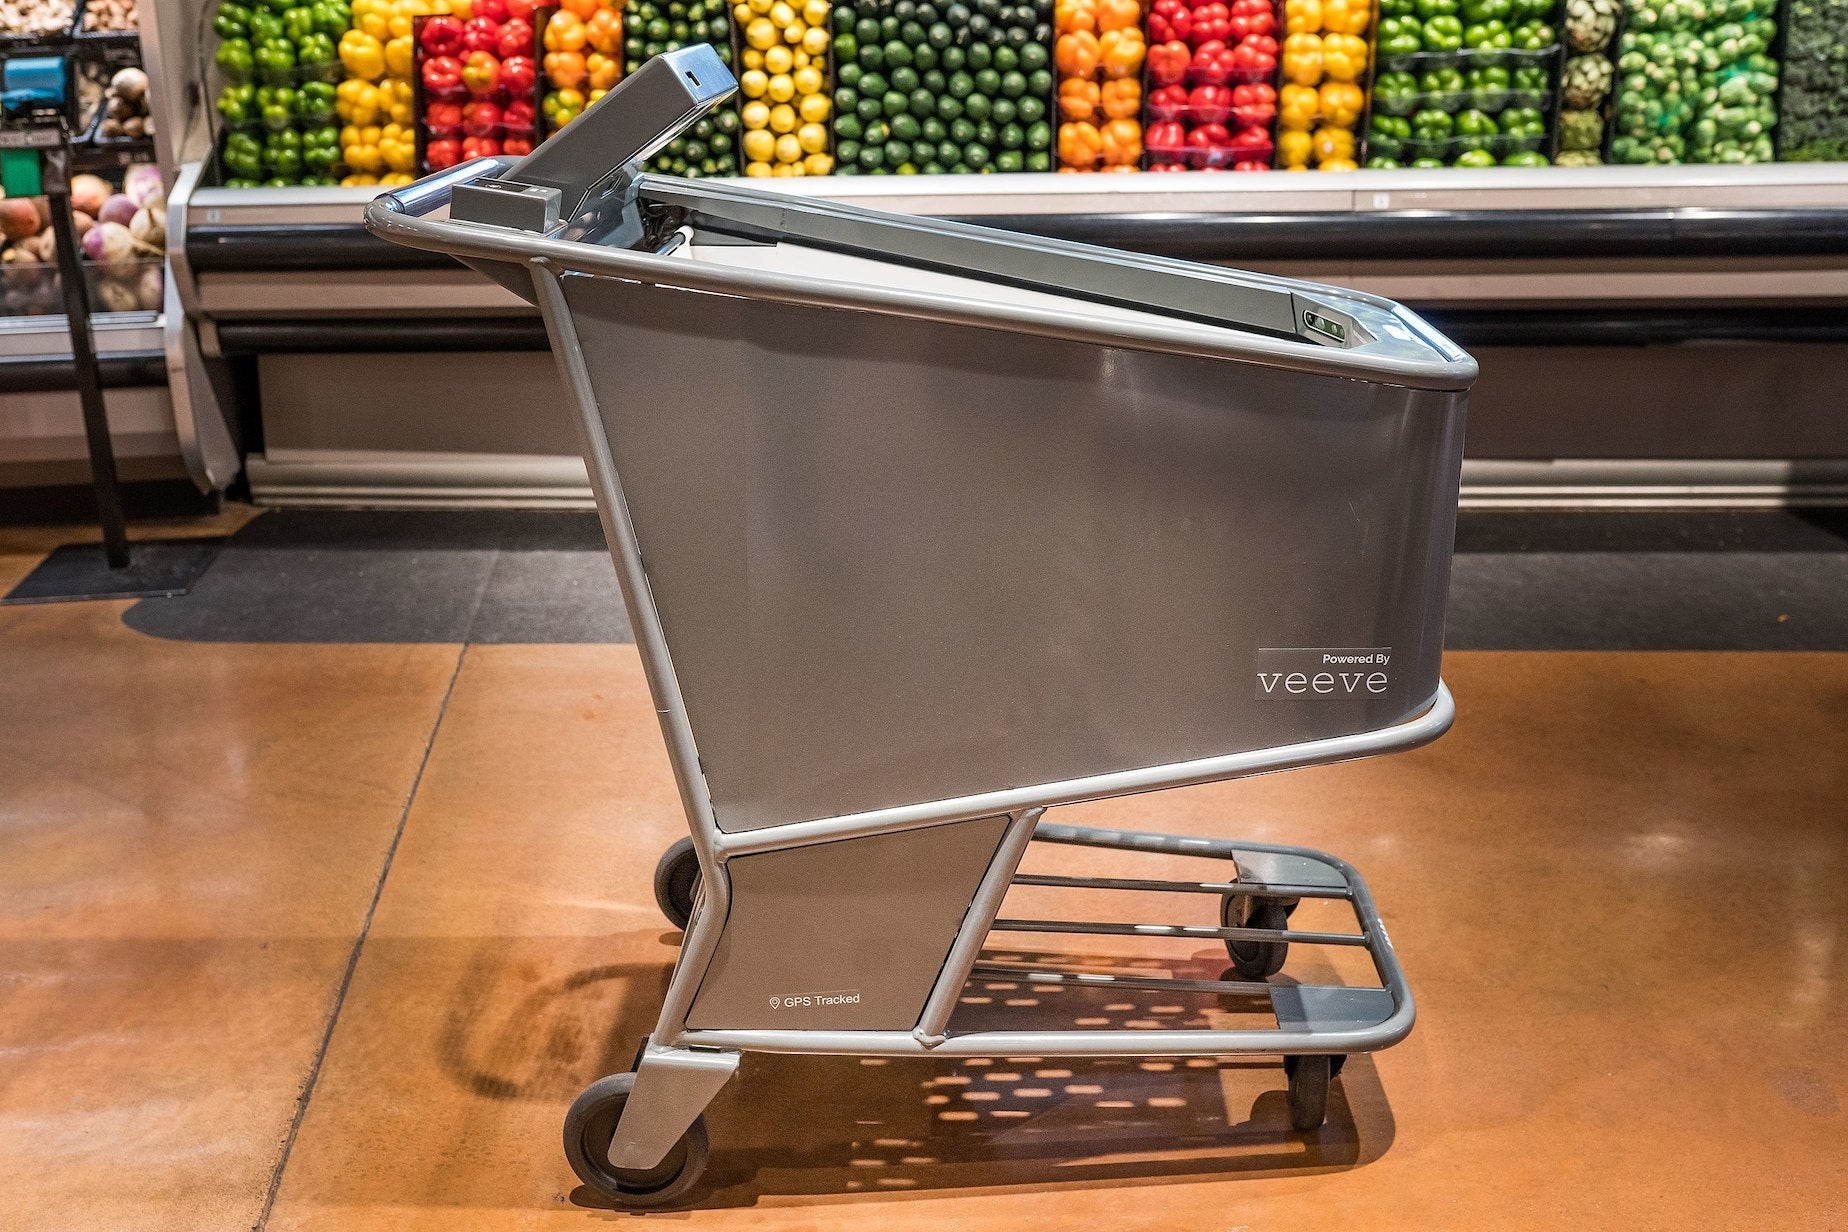 Veeve AI powered shopping cart pictured in a grocery store